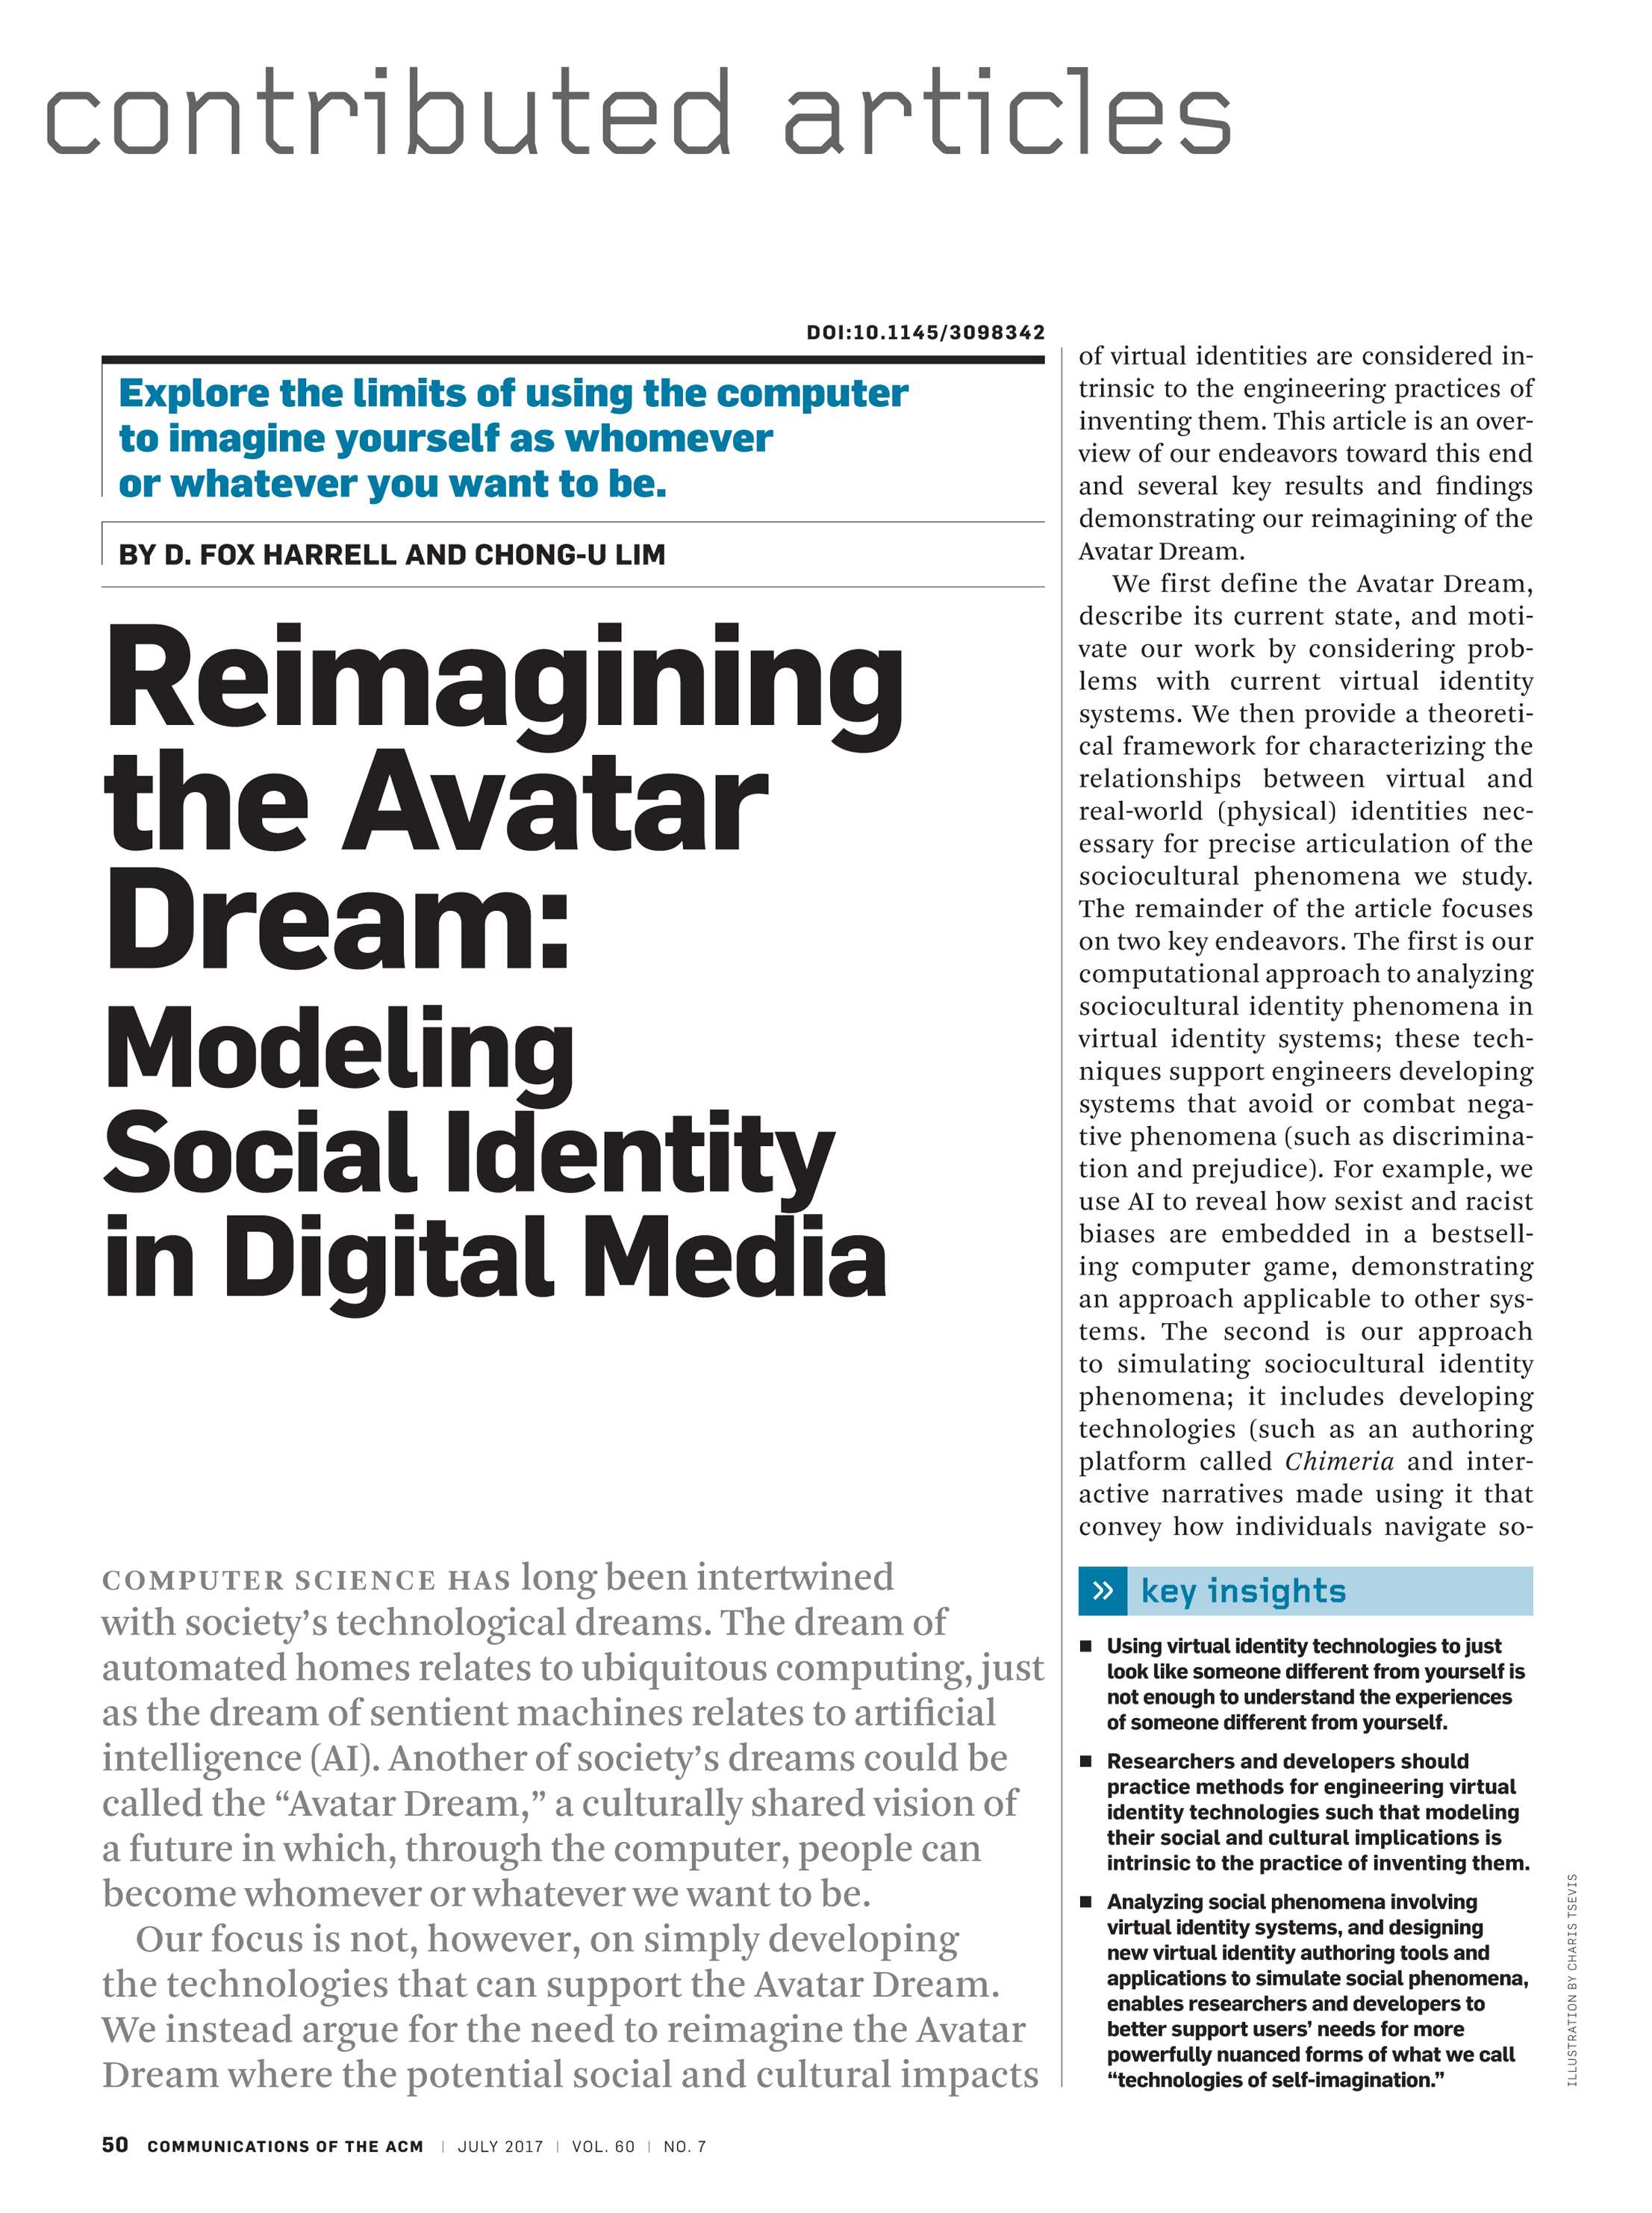 Communications of the ACM - July 2017 - page 50